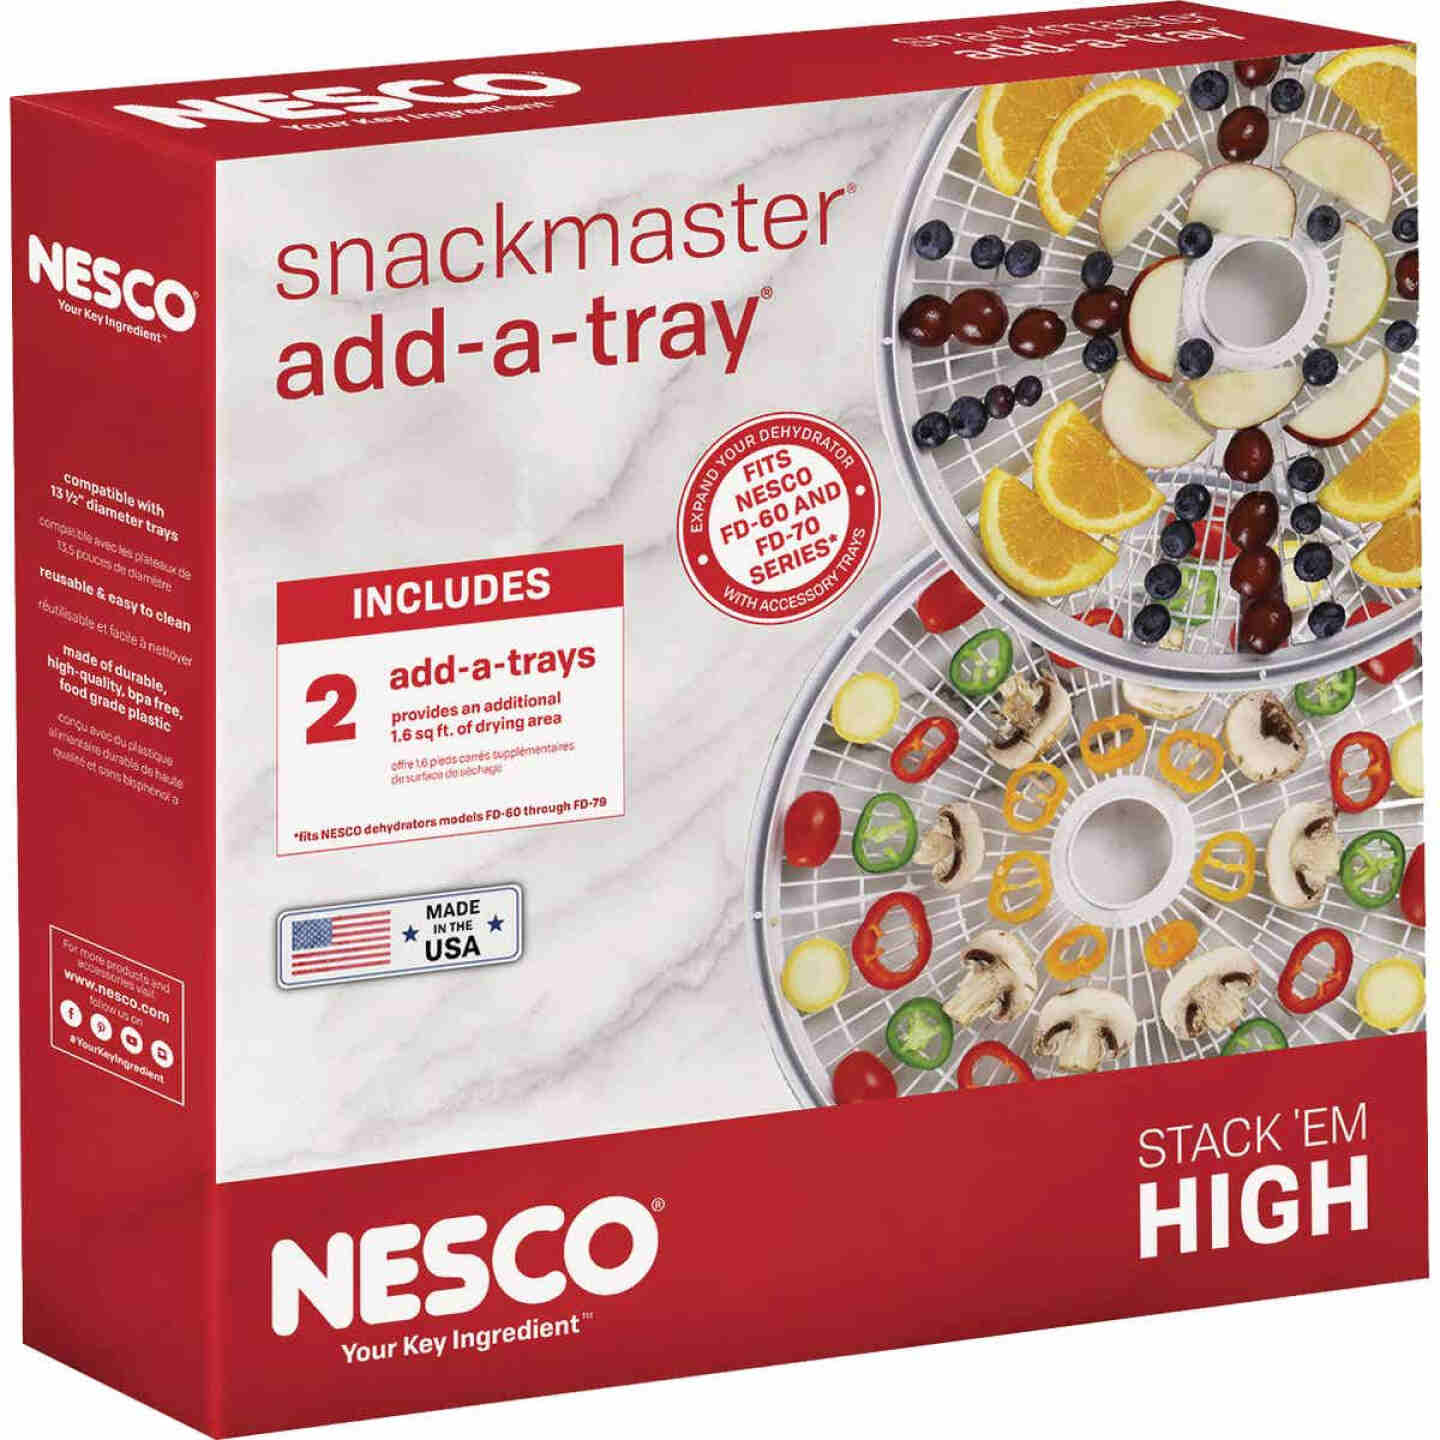 Nesco Snackmaster Add-A-Trays for 60 & 70 Series Dehydrators (2 Count) Image 2